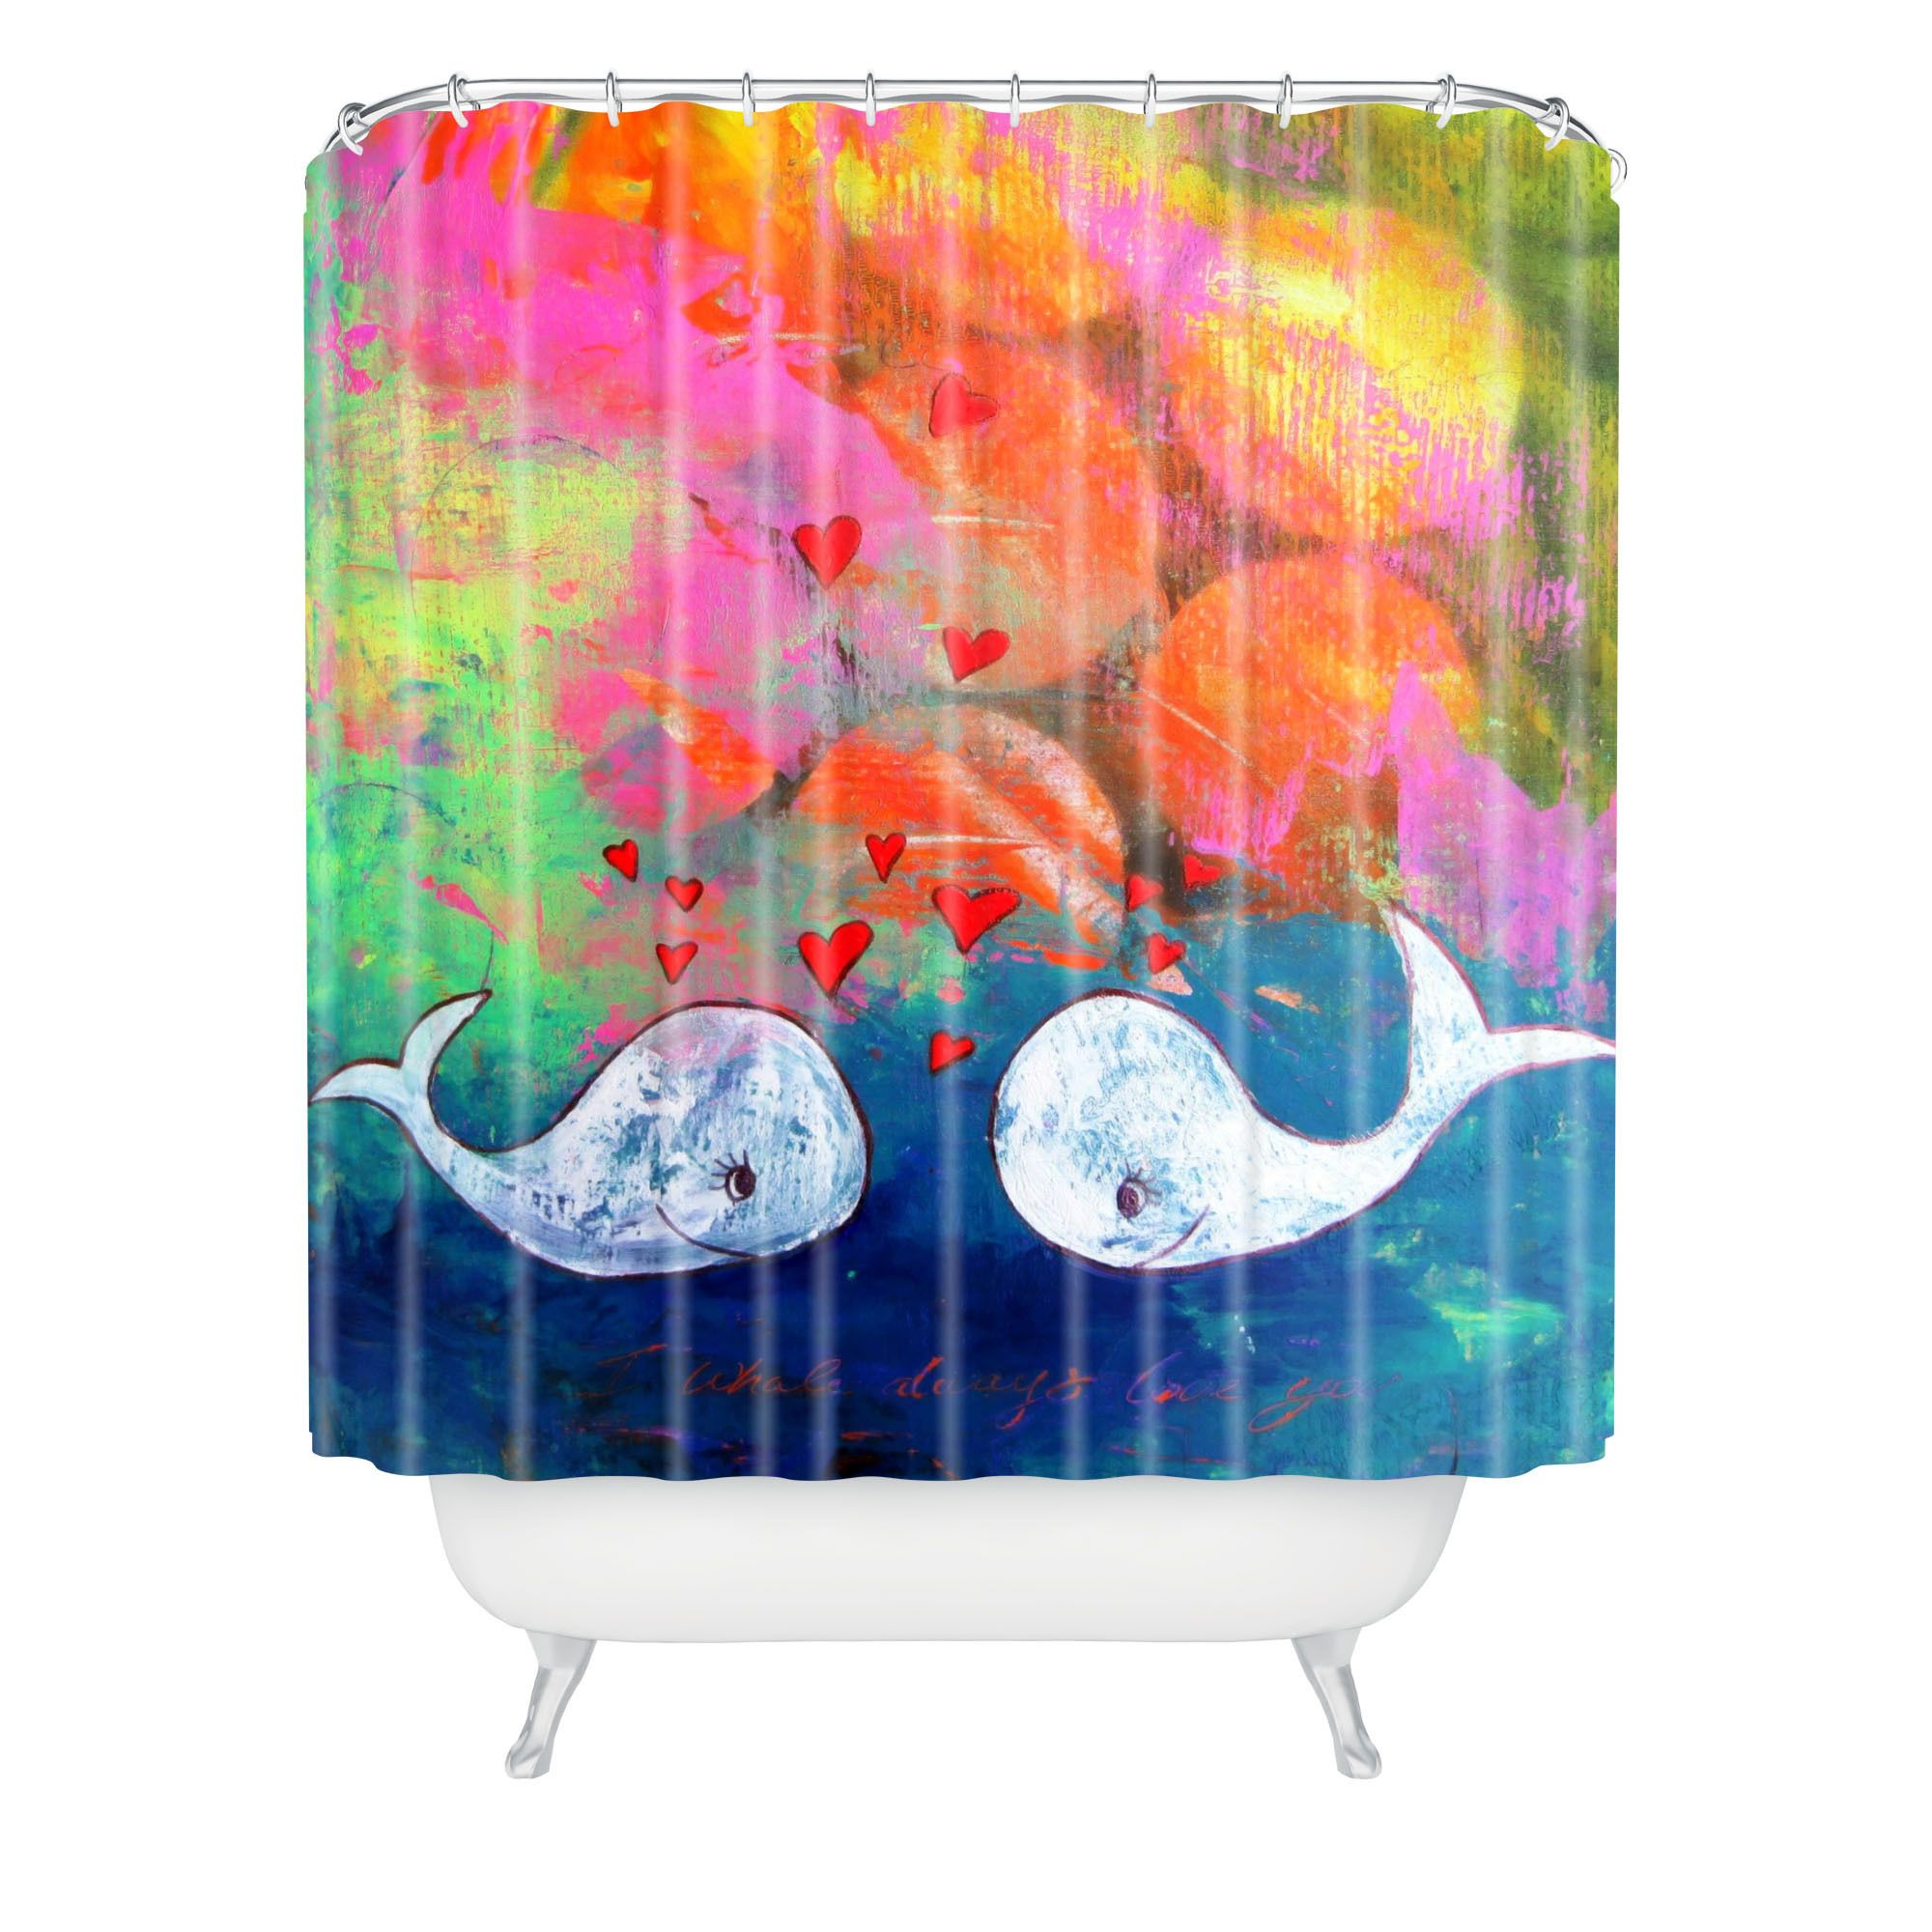 DENY Designs Sophia Buddenhagen I Whale Always Love You Shower Curtain